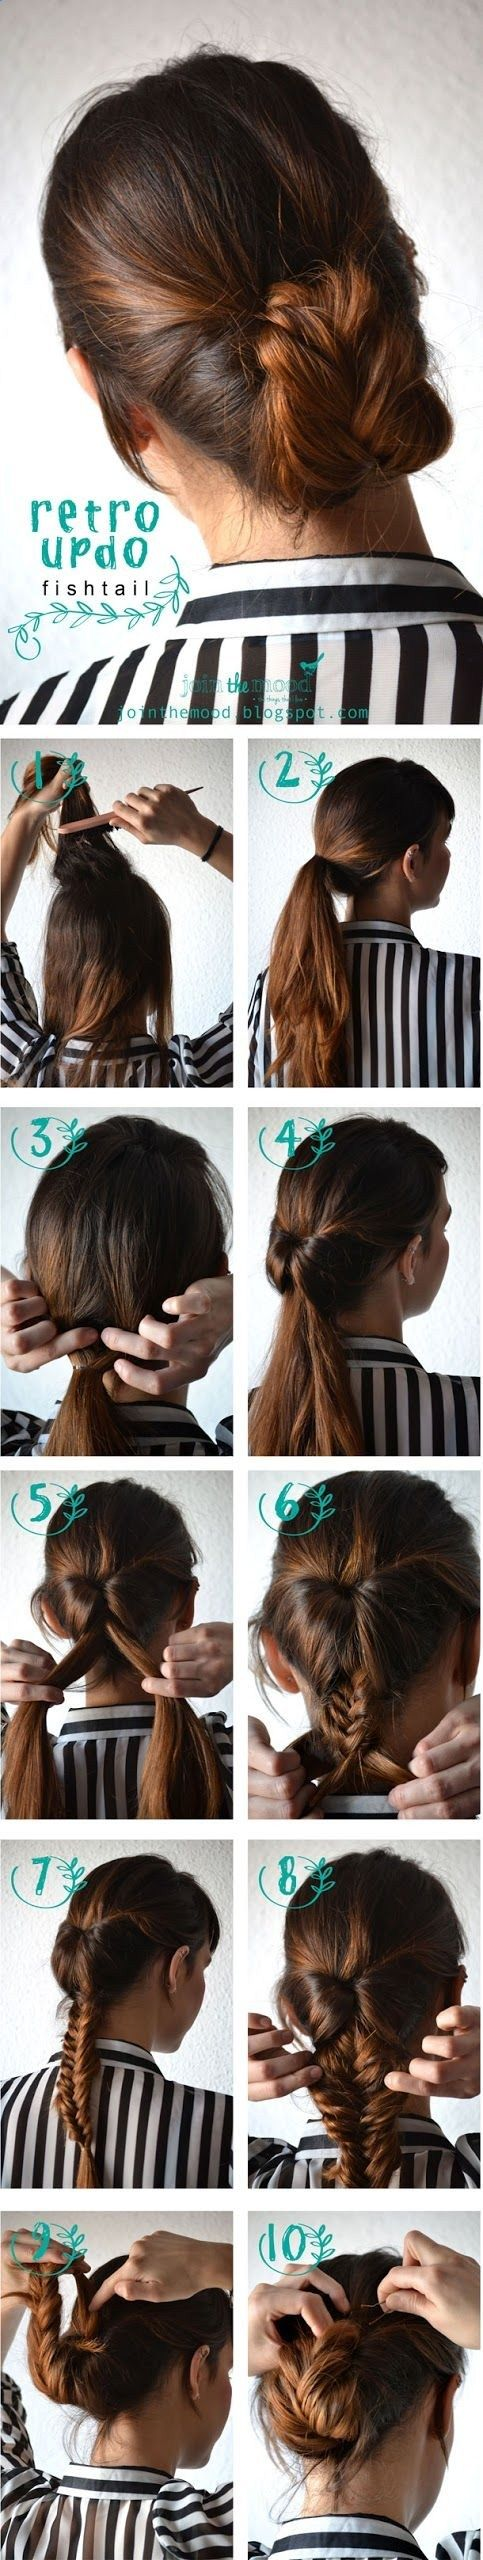 DID IT! The Best 25 Useful Hair Tutorials Ever - Fashion Diva Design .